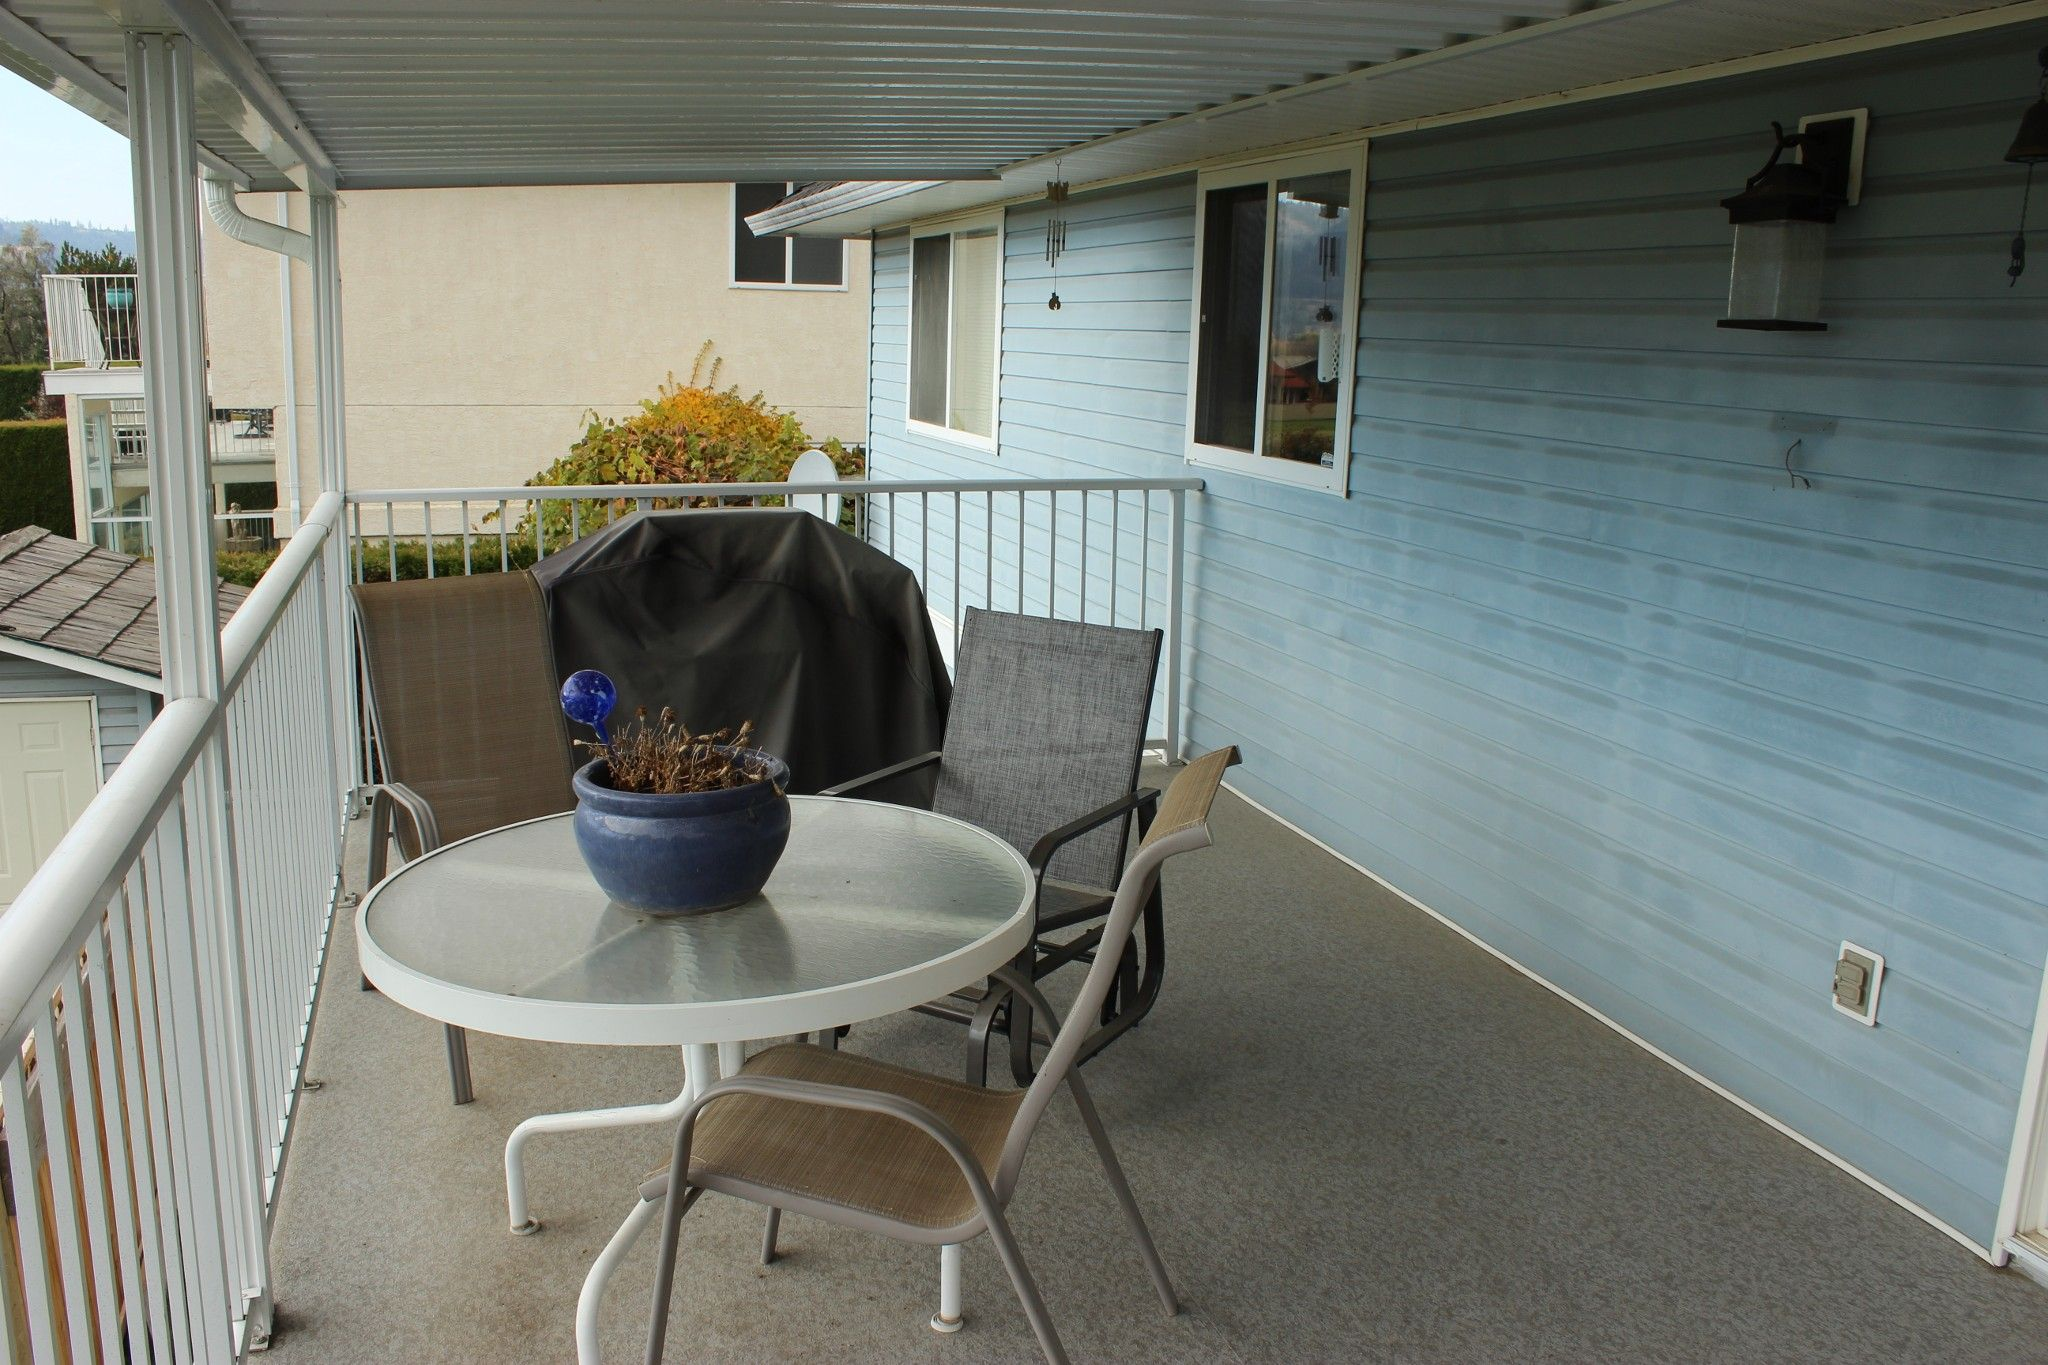 Photo 15: Photos: 3480 Navatanee Drive in Kamloops: South Thompson Valley House for sale : MLS®# 148627